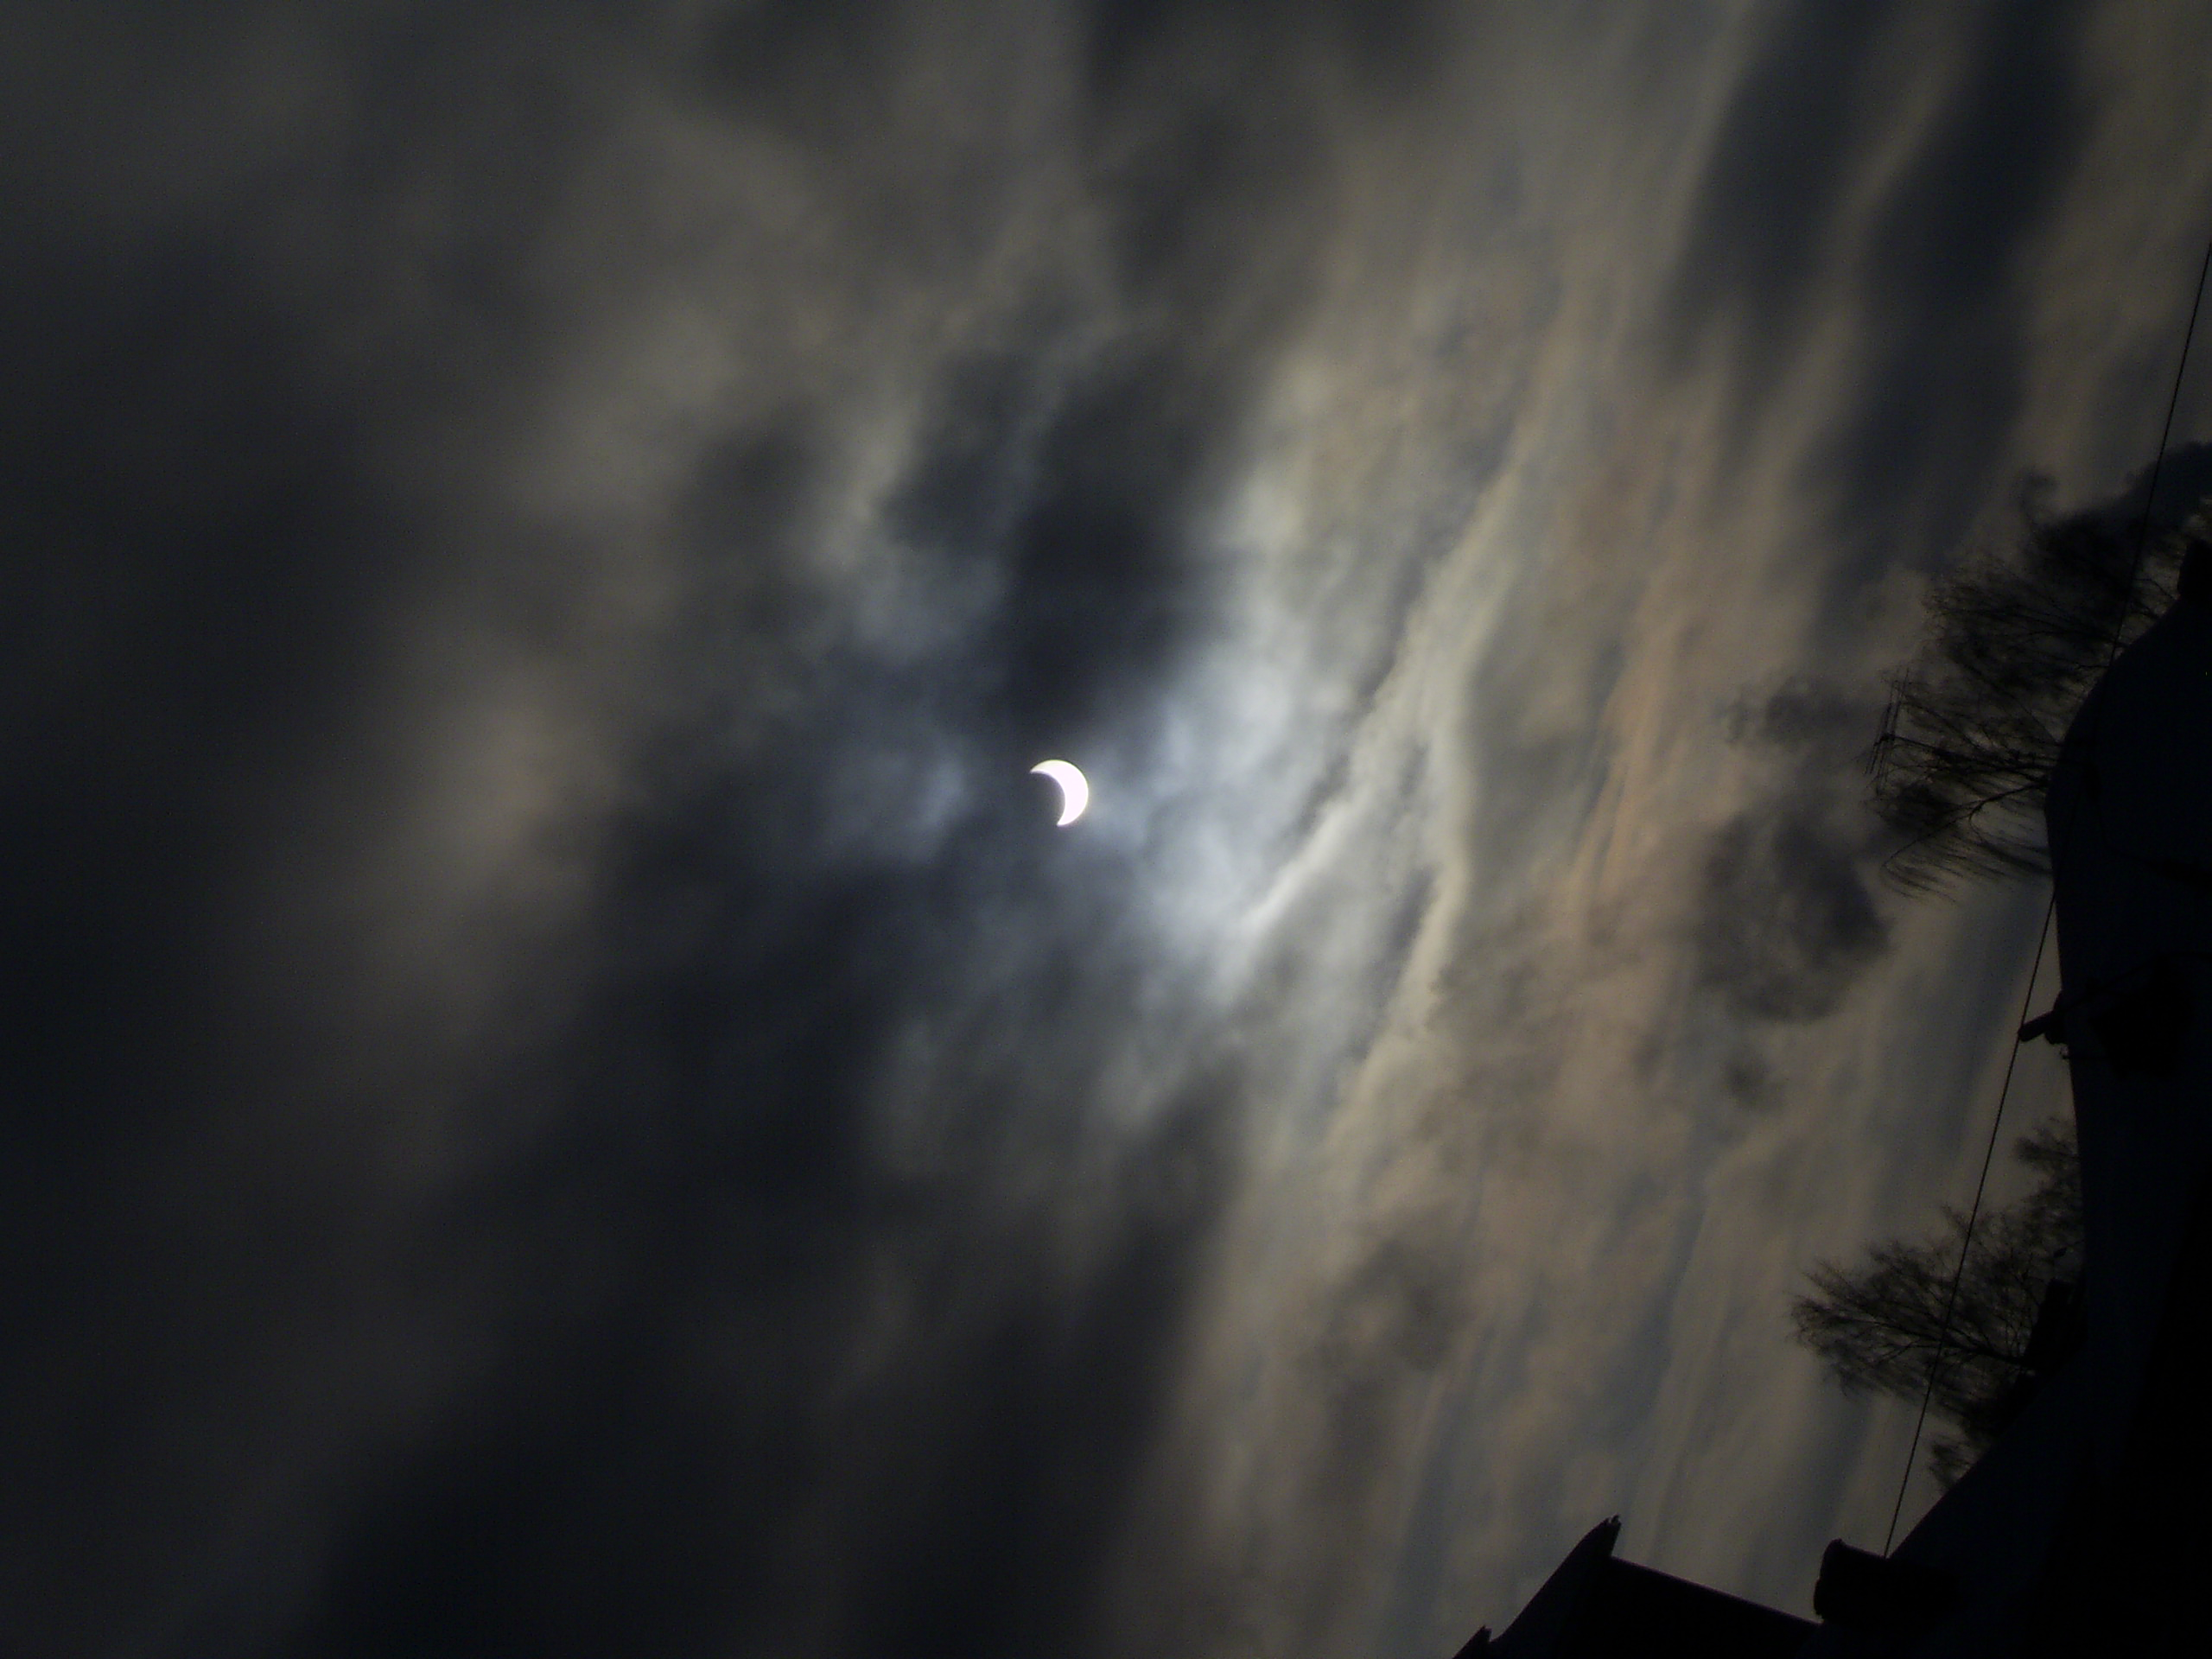 Partial solar eclipse 01/04/2011 as seen from Tver